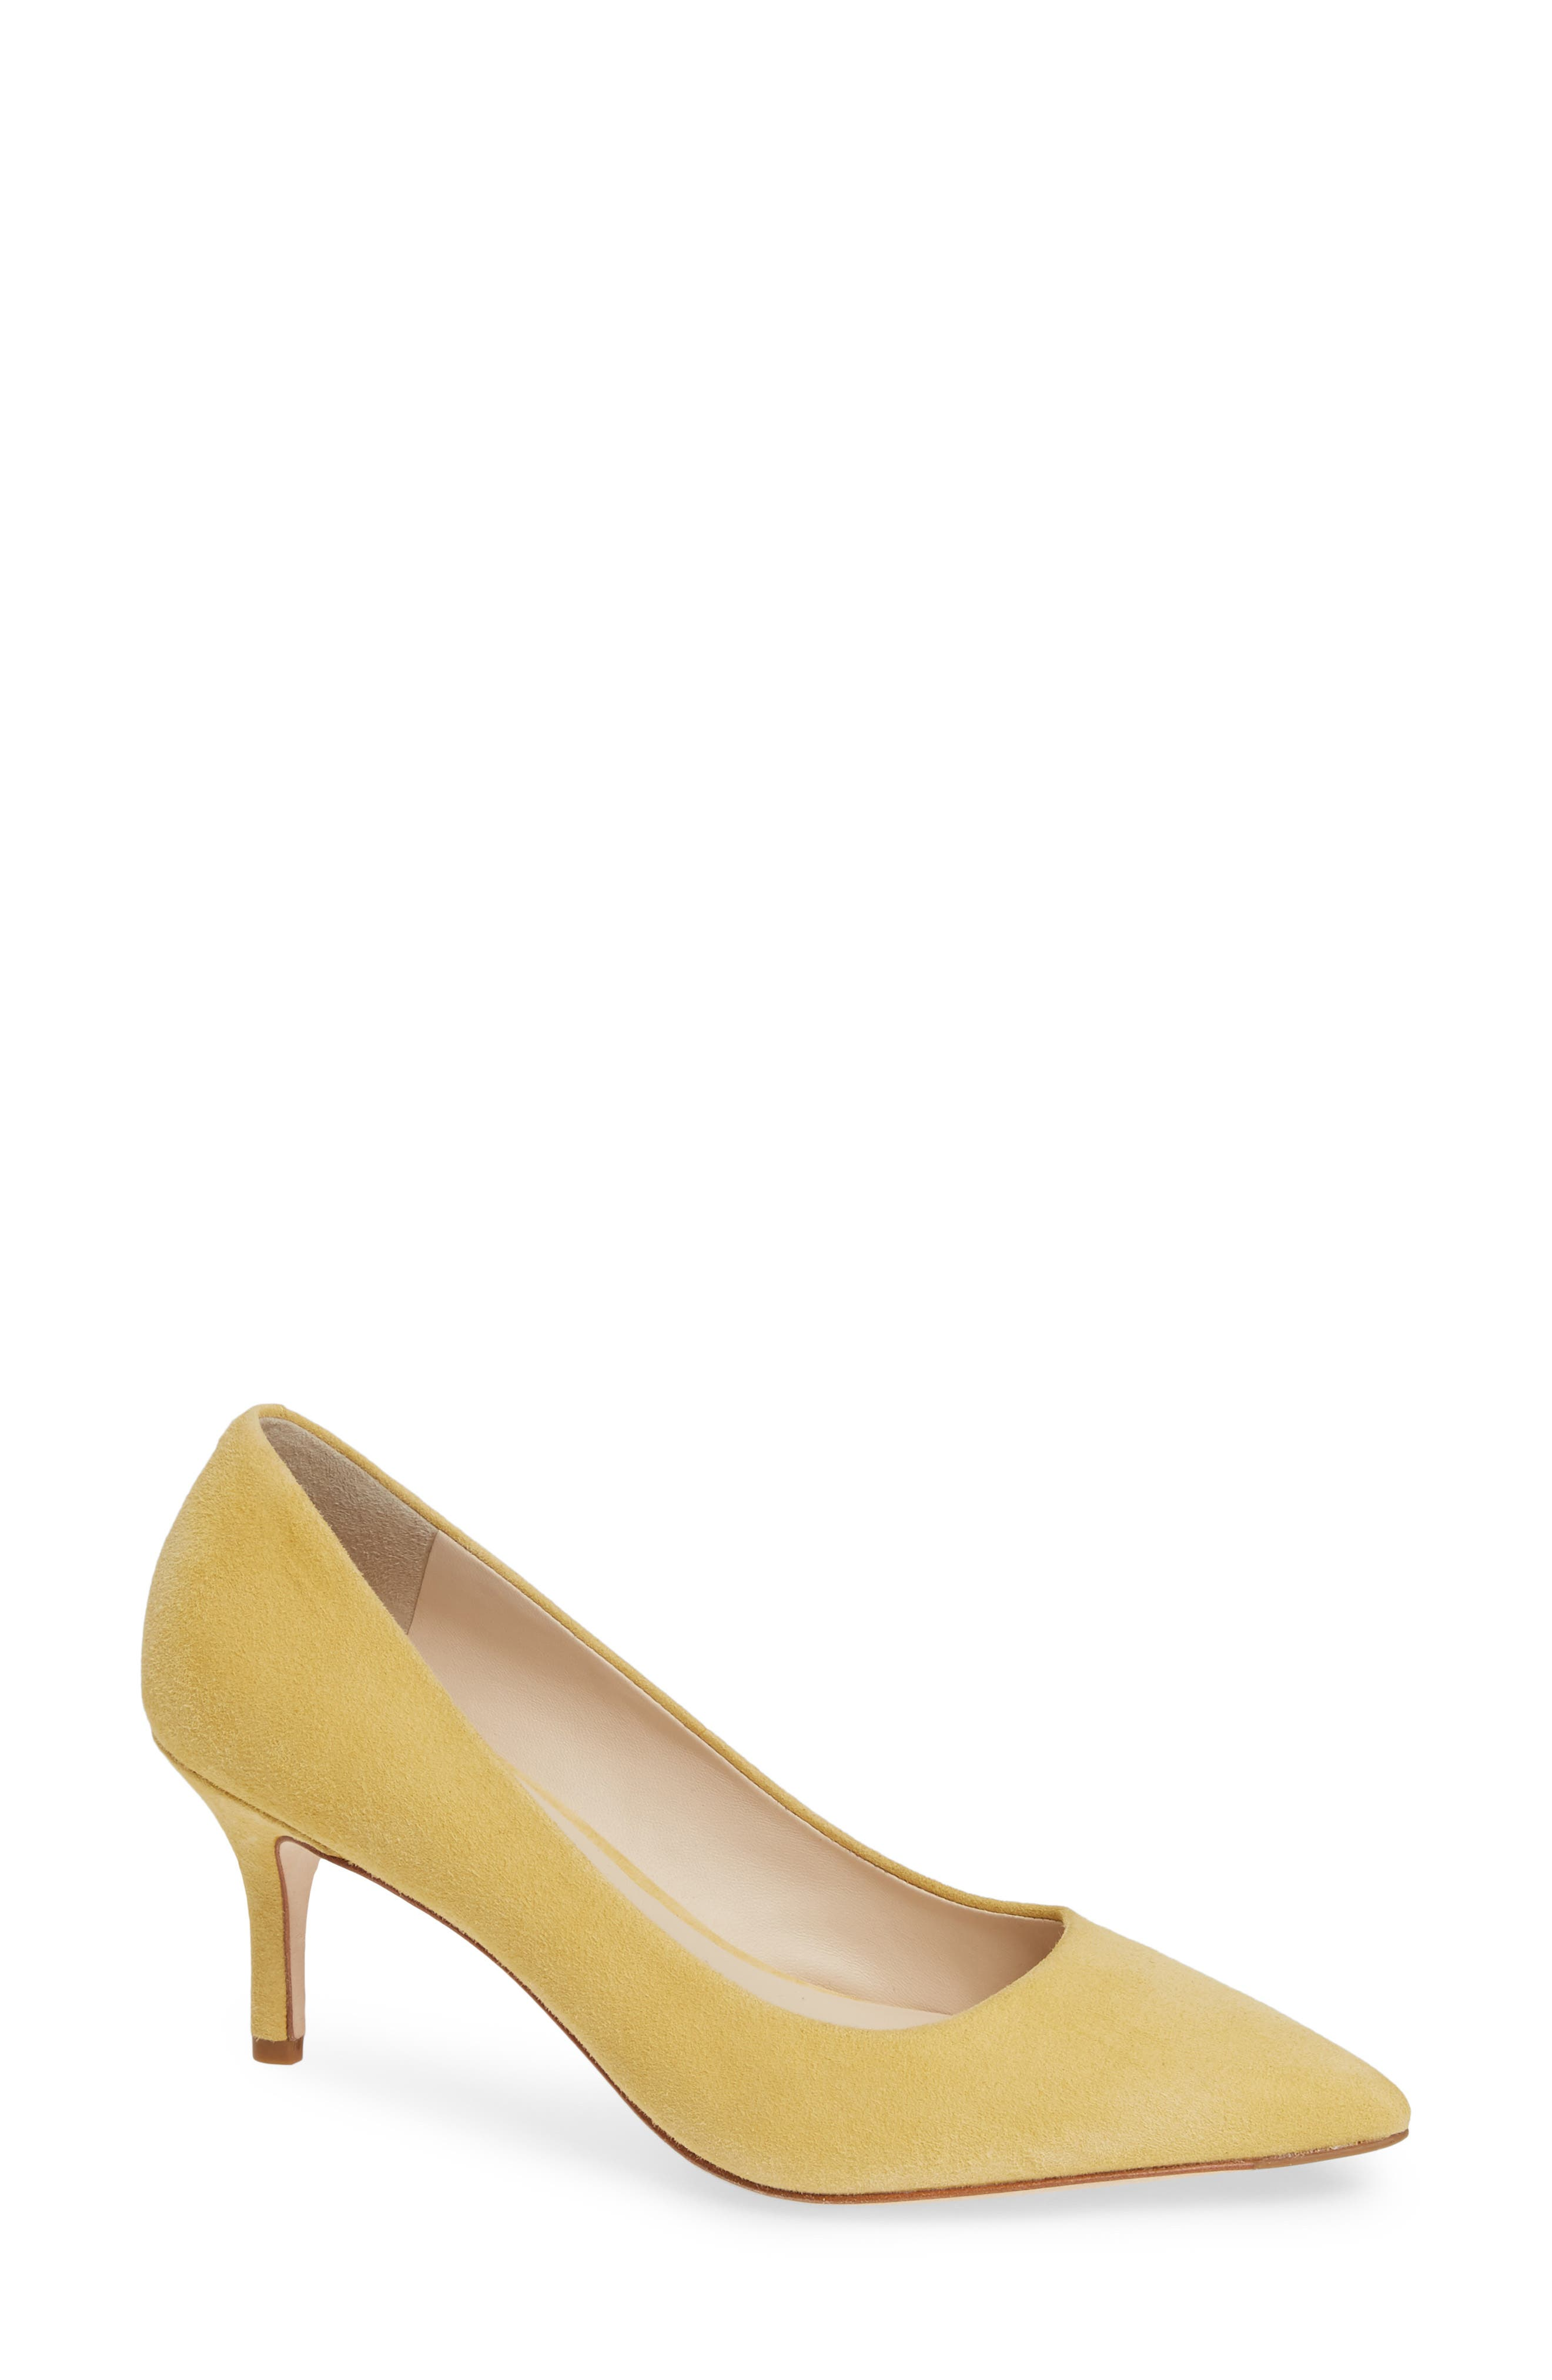 COLE HAAN,                             Vesta Pointy Toe Pump,                             Main thumbnail 1, color,                             SUNSET GOLD SUEDE